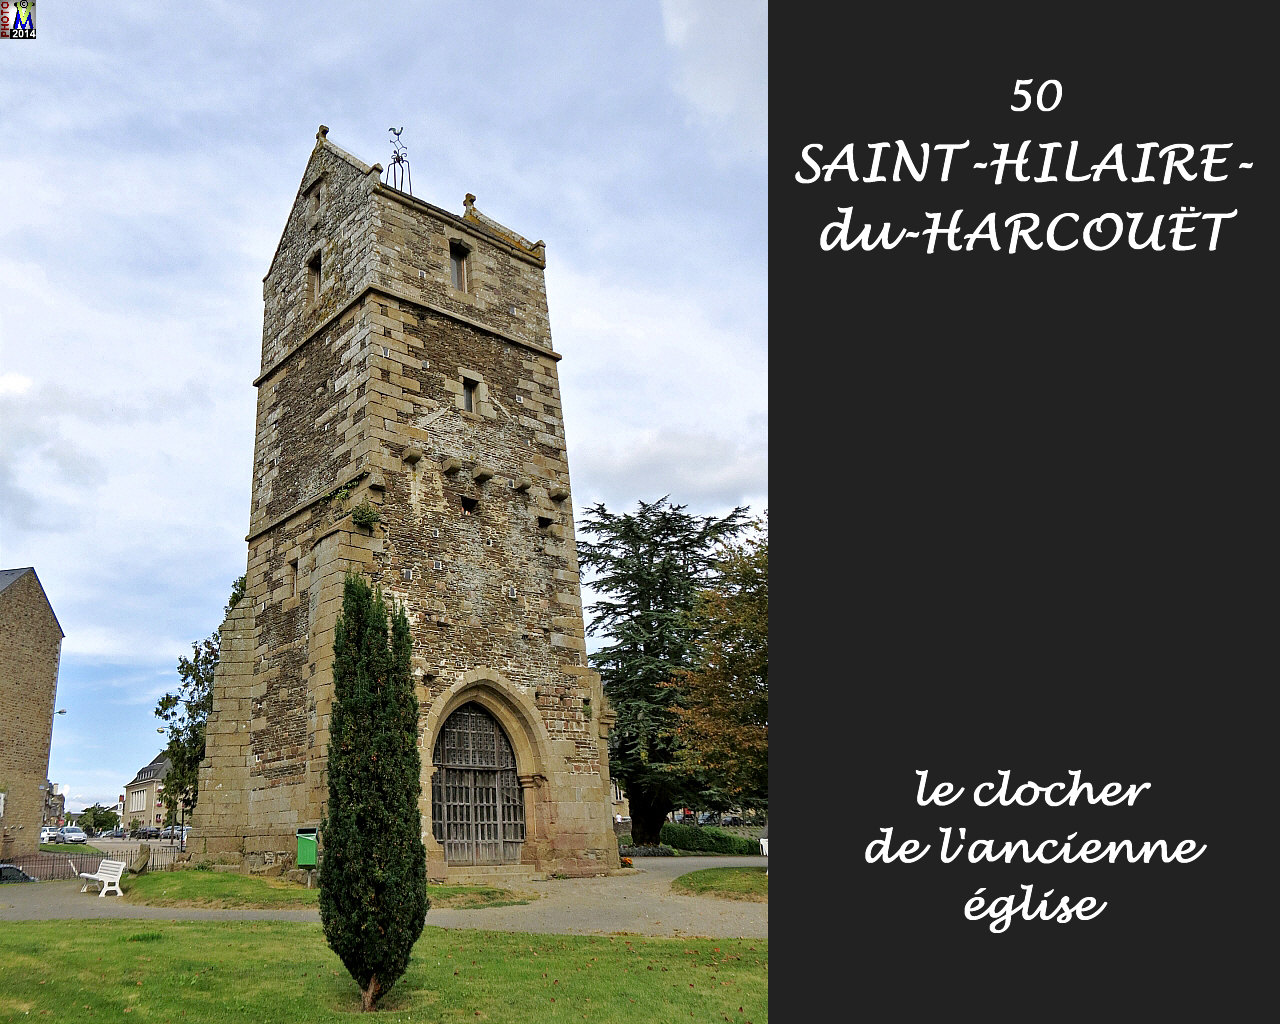 50StHILAIRE-HARCOUET_clocher_100.jpg